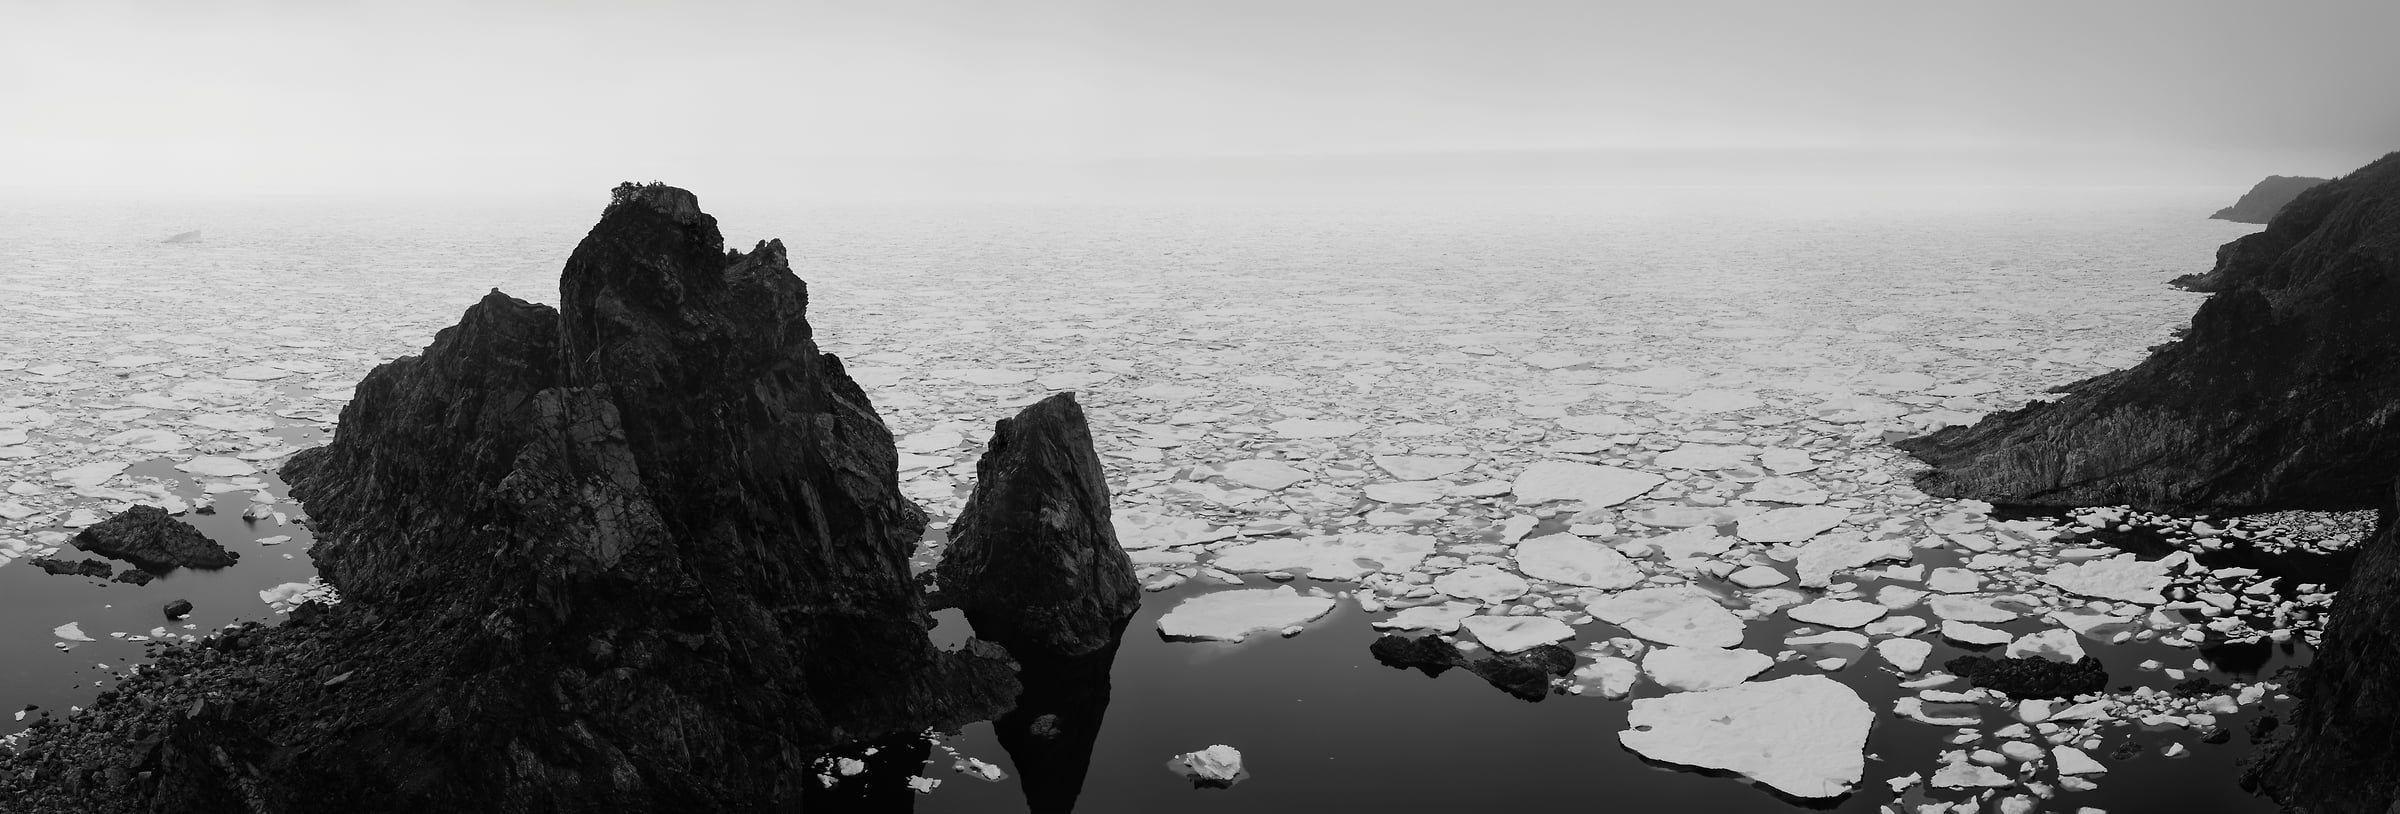 1,580 megapixels! A very high resolution, large-format VAST photo of ice and icebergs floating in an ocean bay; black & white fine art landscape photo created by Scott Dimond in La Scie, Newfoundland, Canada